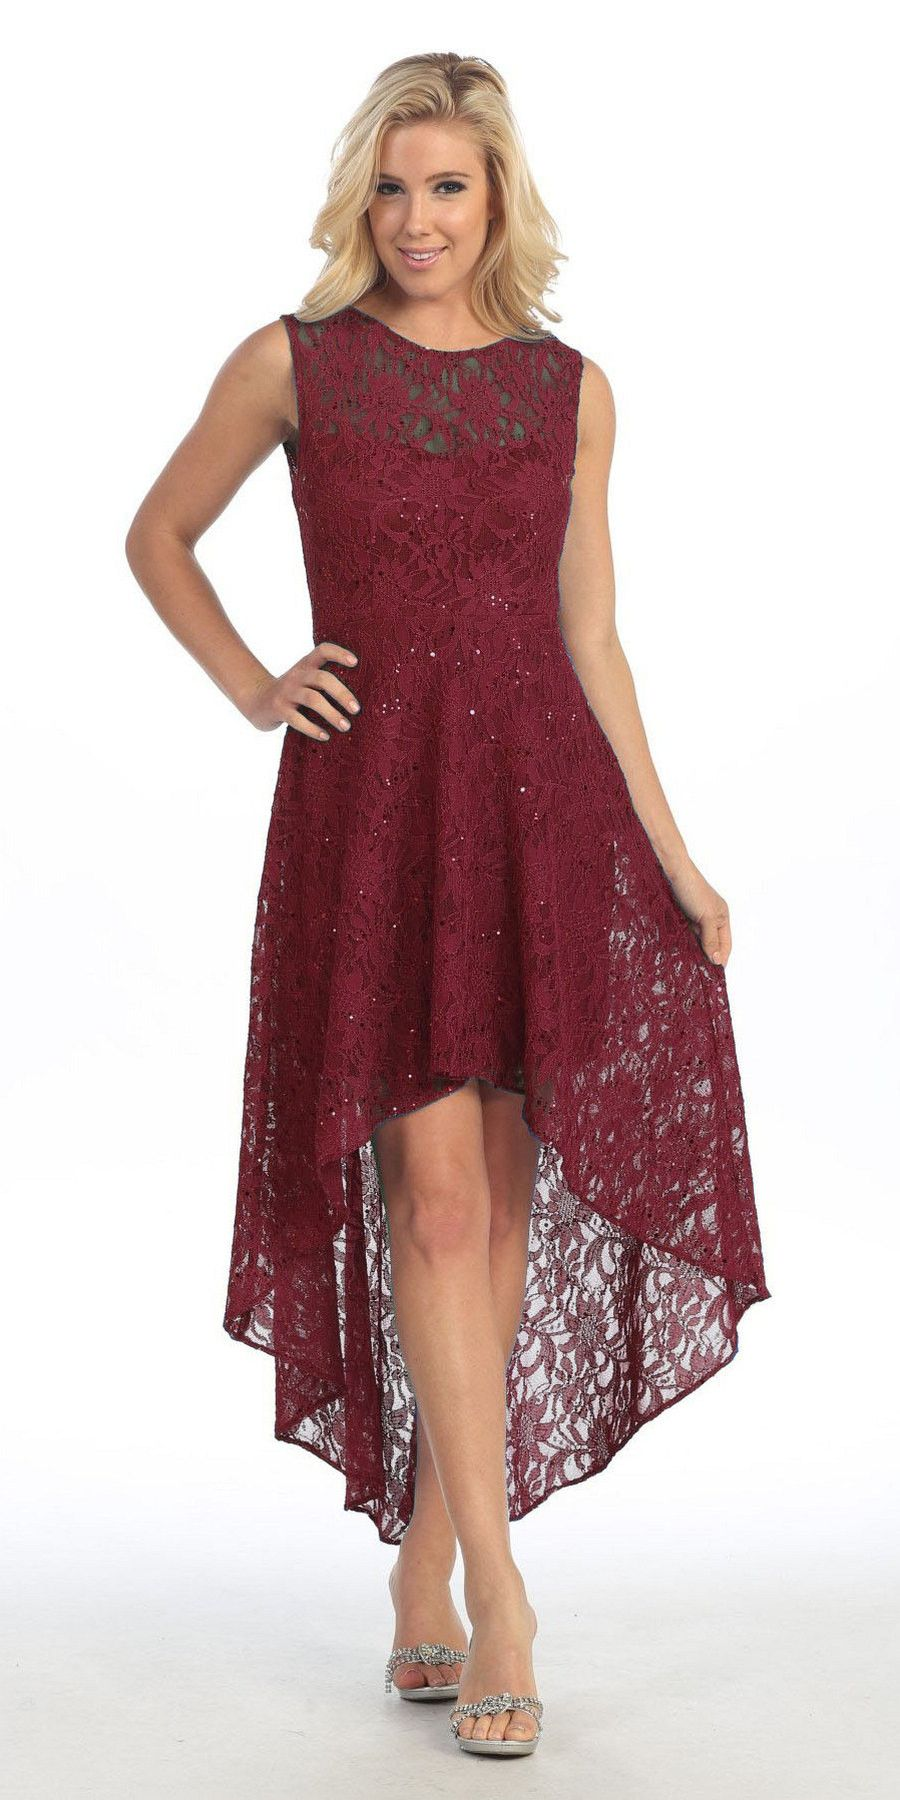 26badf78e8dc Enjoy the evening in this high low burgundy lace semi formal dress. This  high low